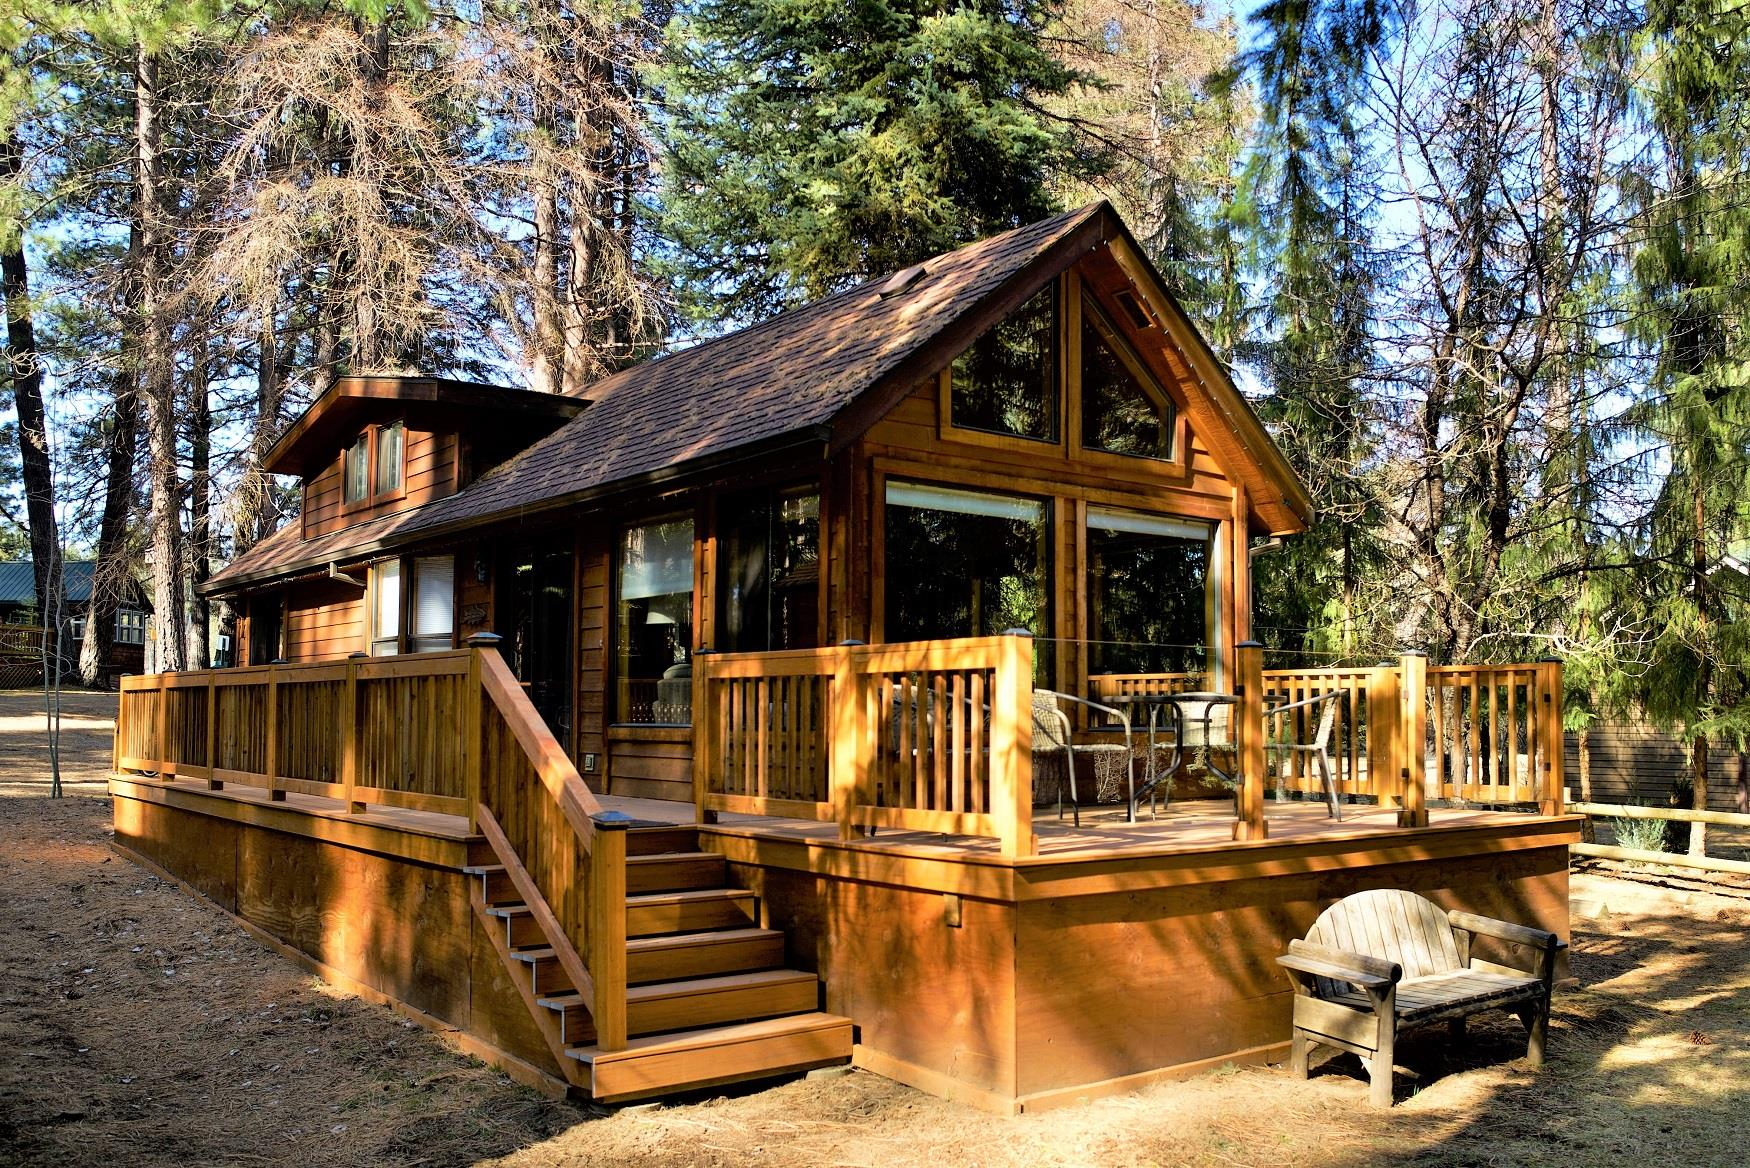 The spacious front deck of Riverview Cabin, at Cold Springs Resort, looks out directly onto the pristine Metolius River, in Camp Sherman, Oregon